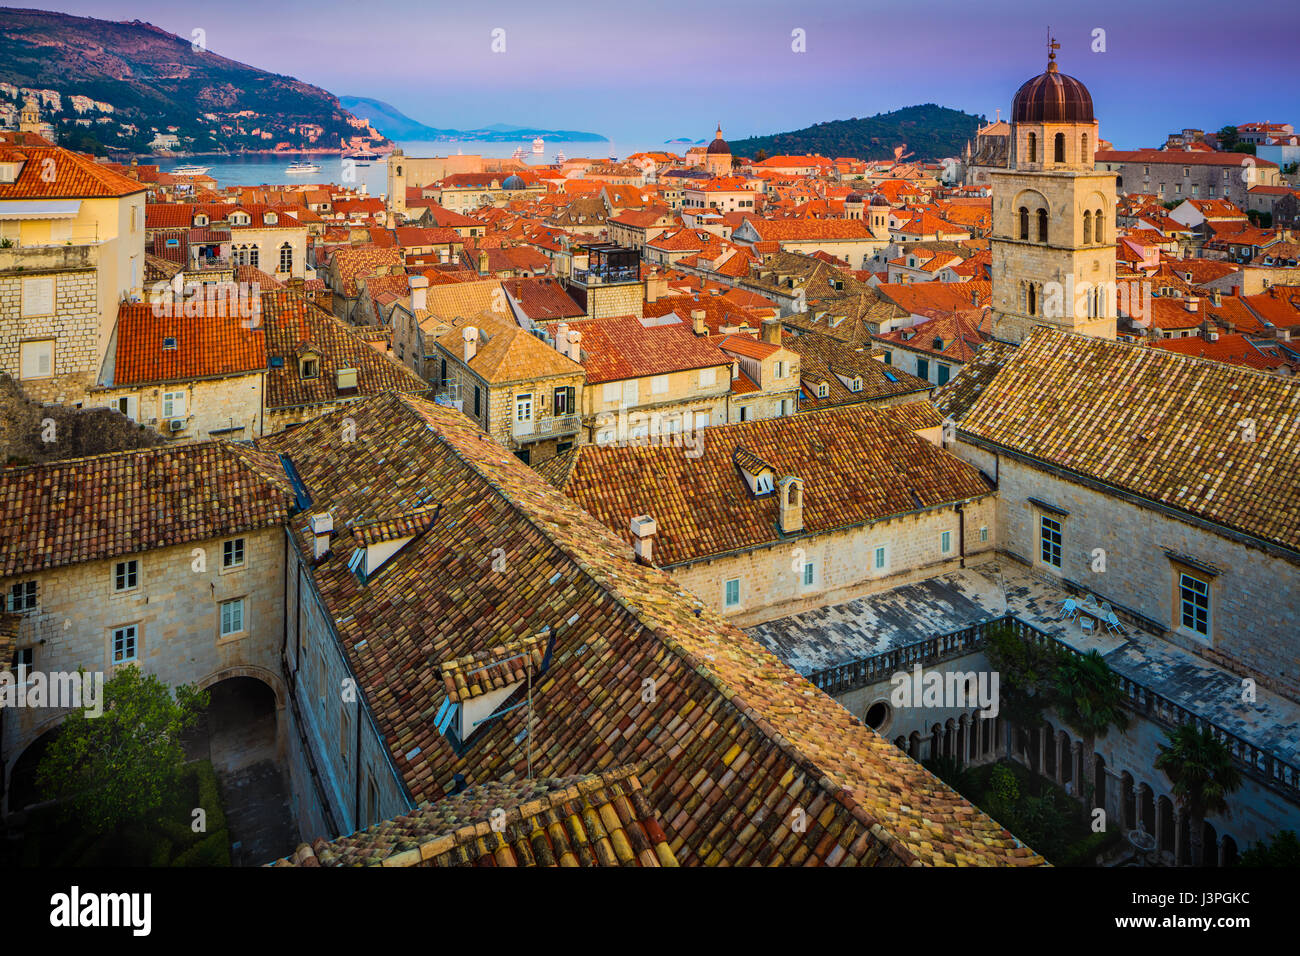 Dubrovnik, Croatia, with its characteristic medieval city walls. Dubrovnik is a Croatian city on the Adriatic Sea, - Stock Image